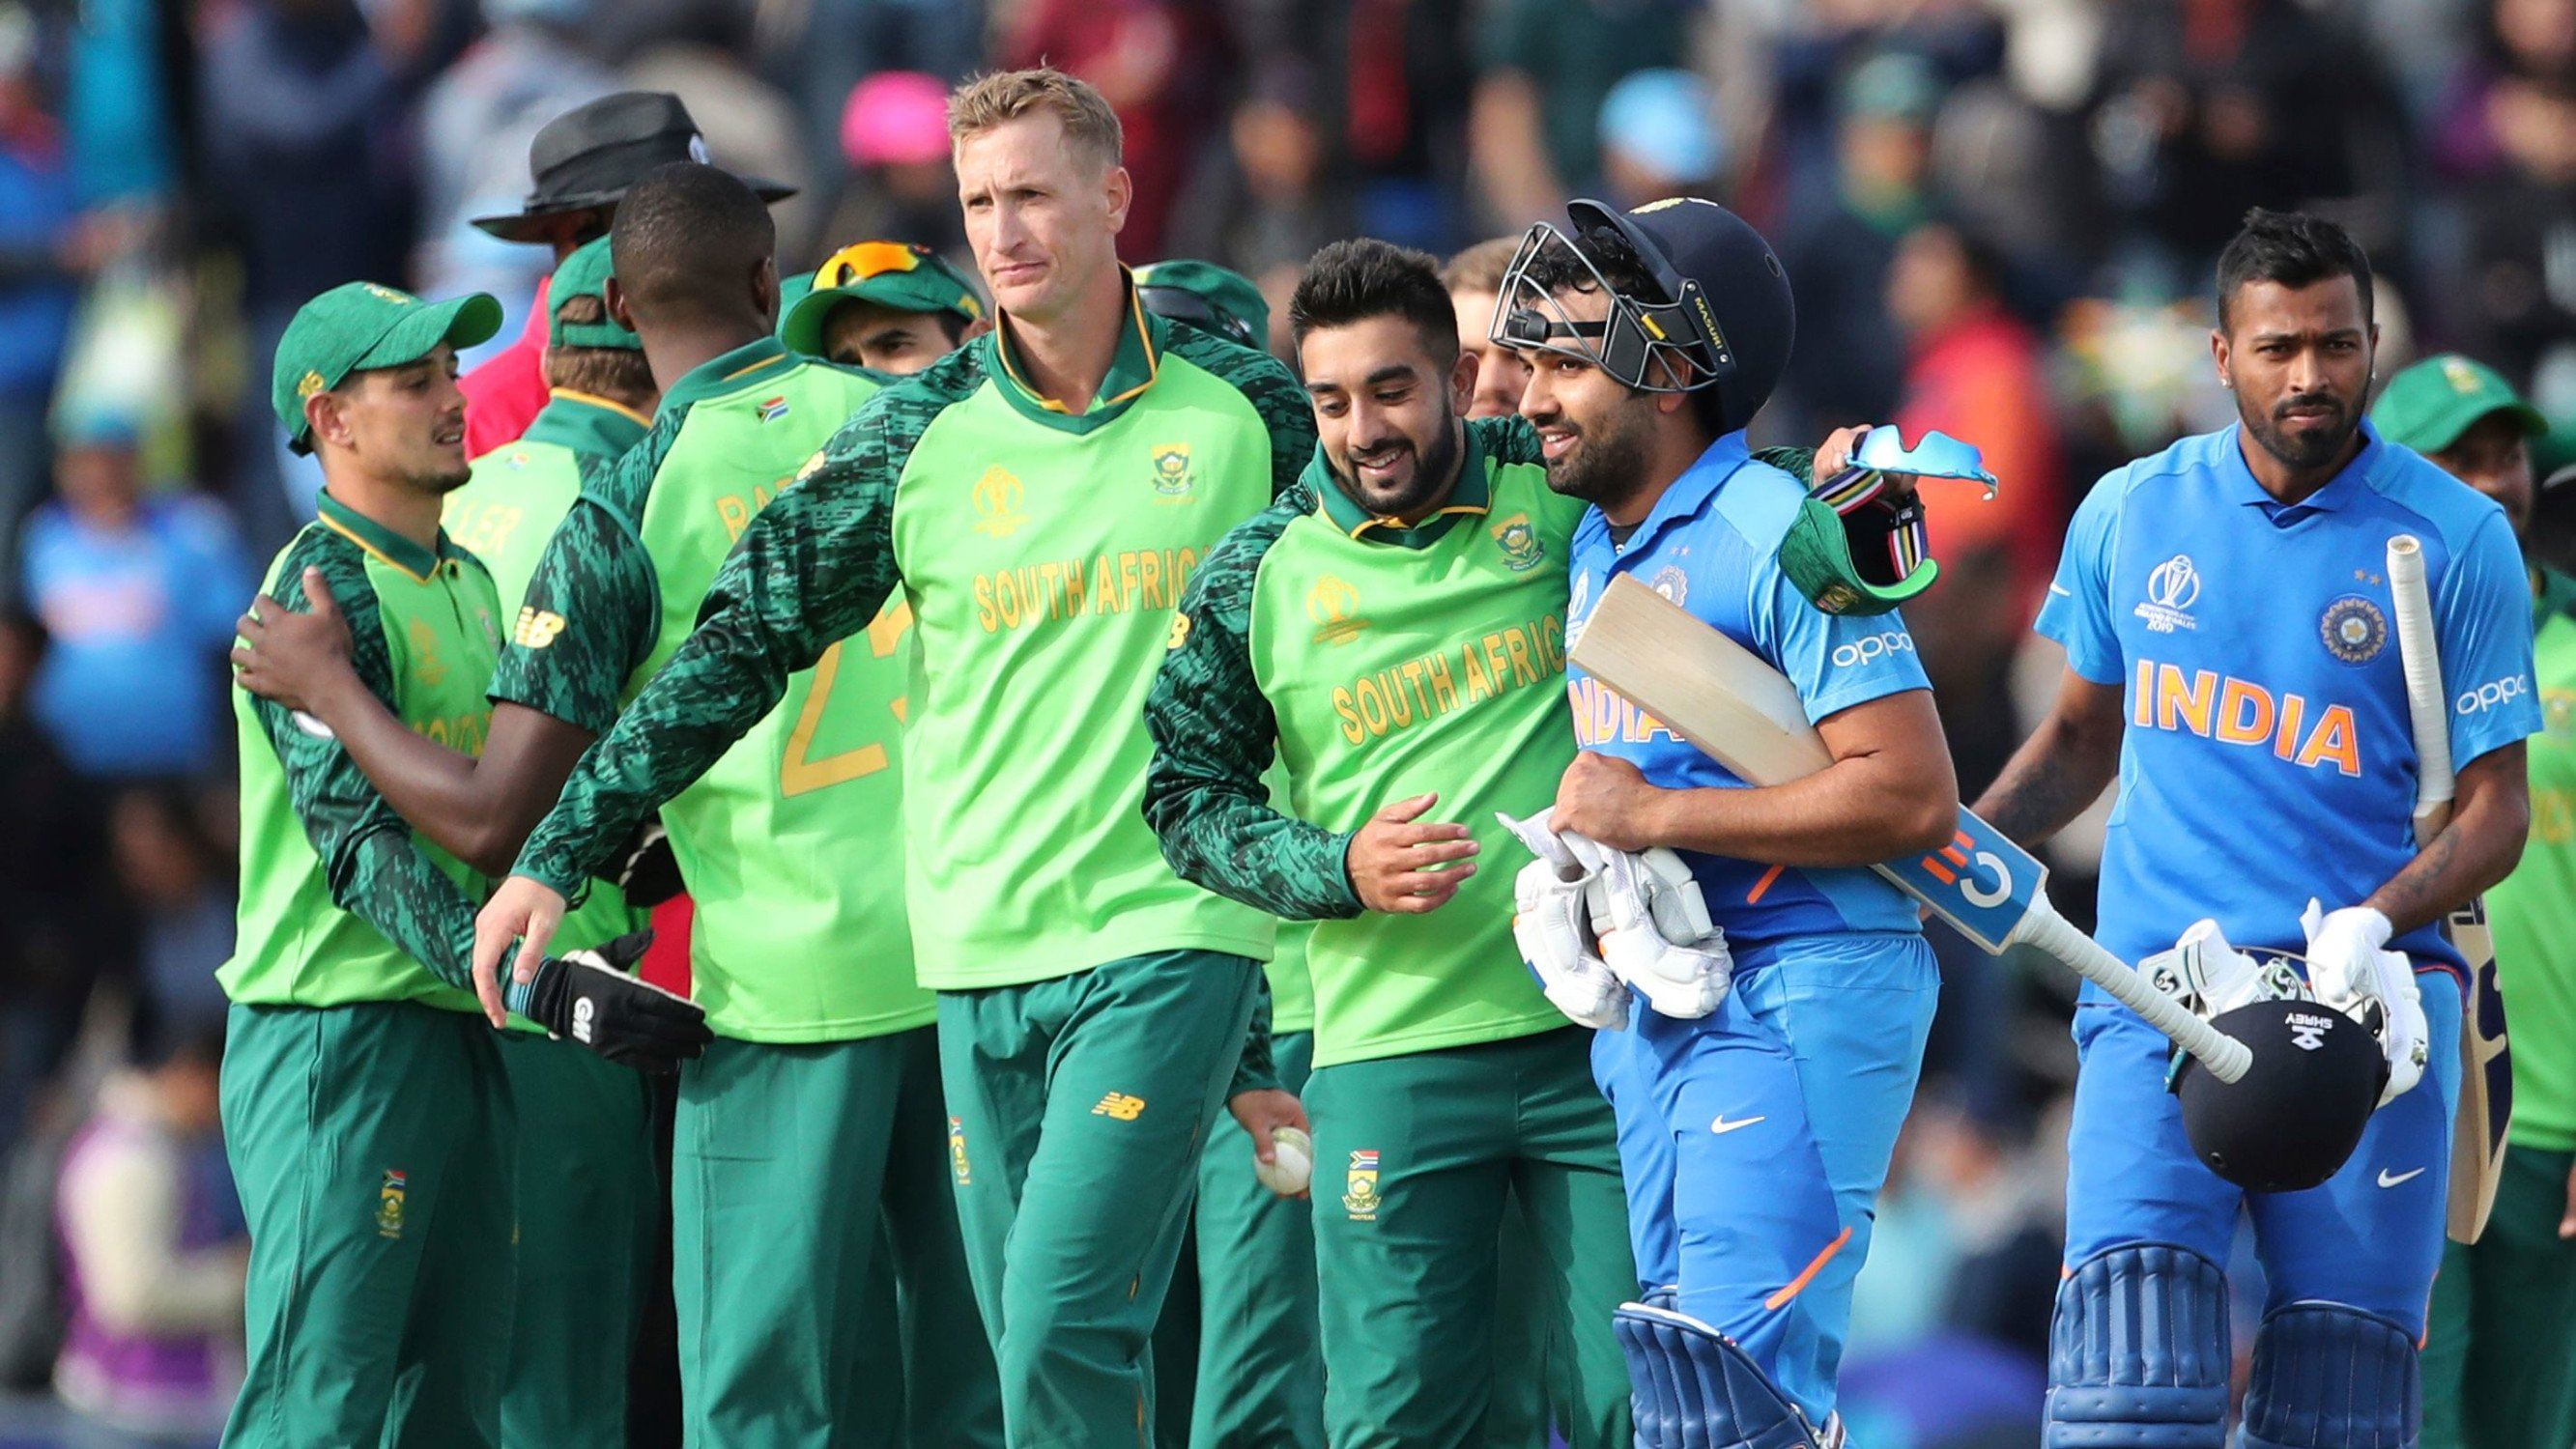 ICC Cricket World Cup 2019: After a comfortable win against the Proteas, here's what India need to do to beat the Aussies